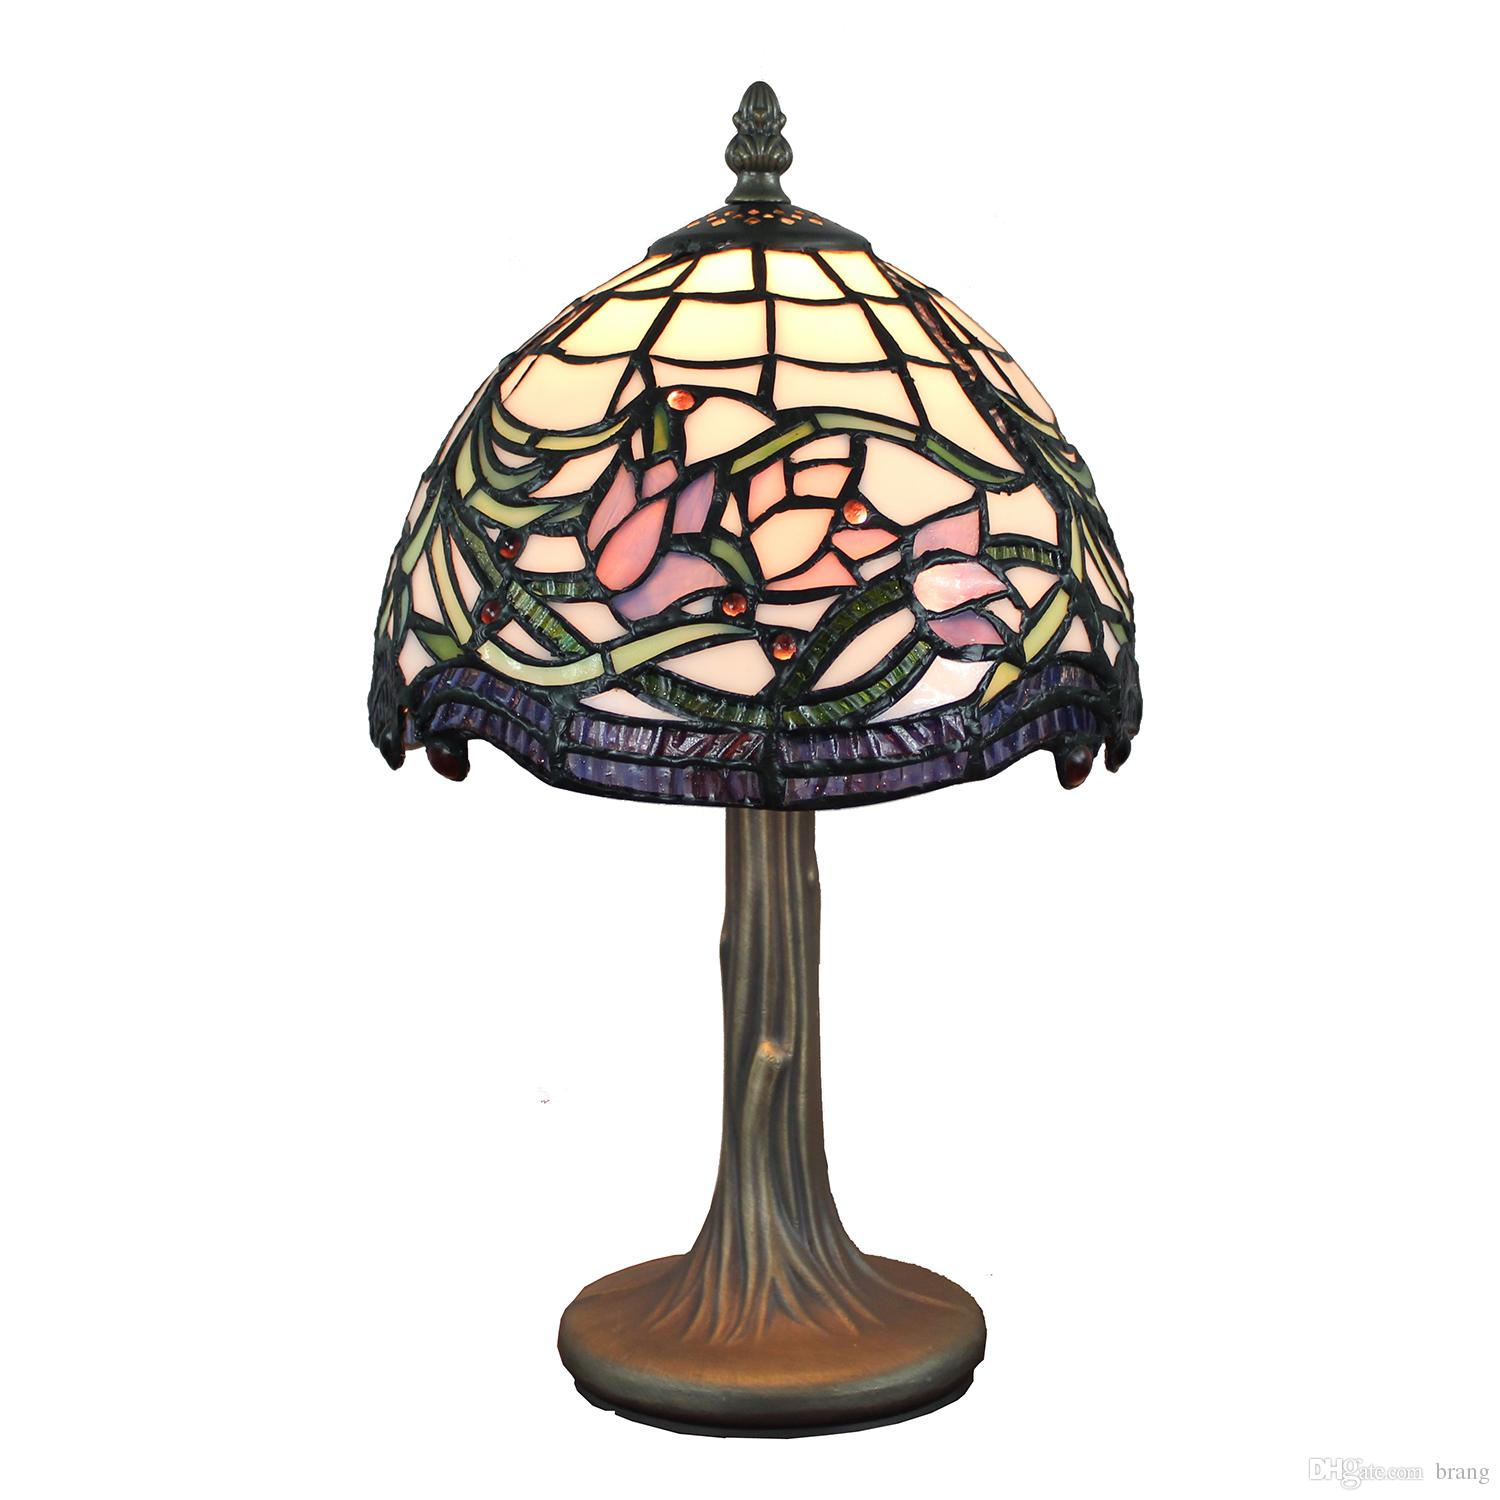 tiffany style lamp stained glass table hand crafted wild accent vine lotus design bedside light from brang dhgate black side annie sloan chalk paint ideas nate berkus marble half